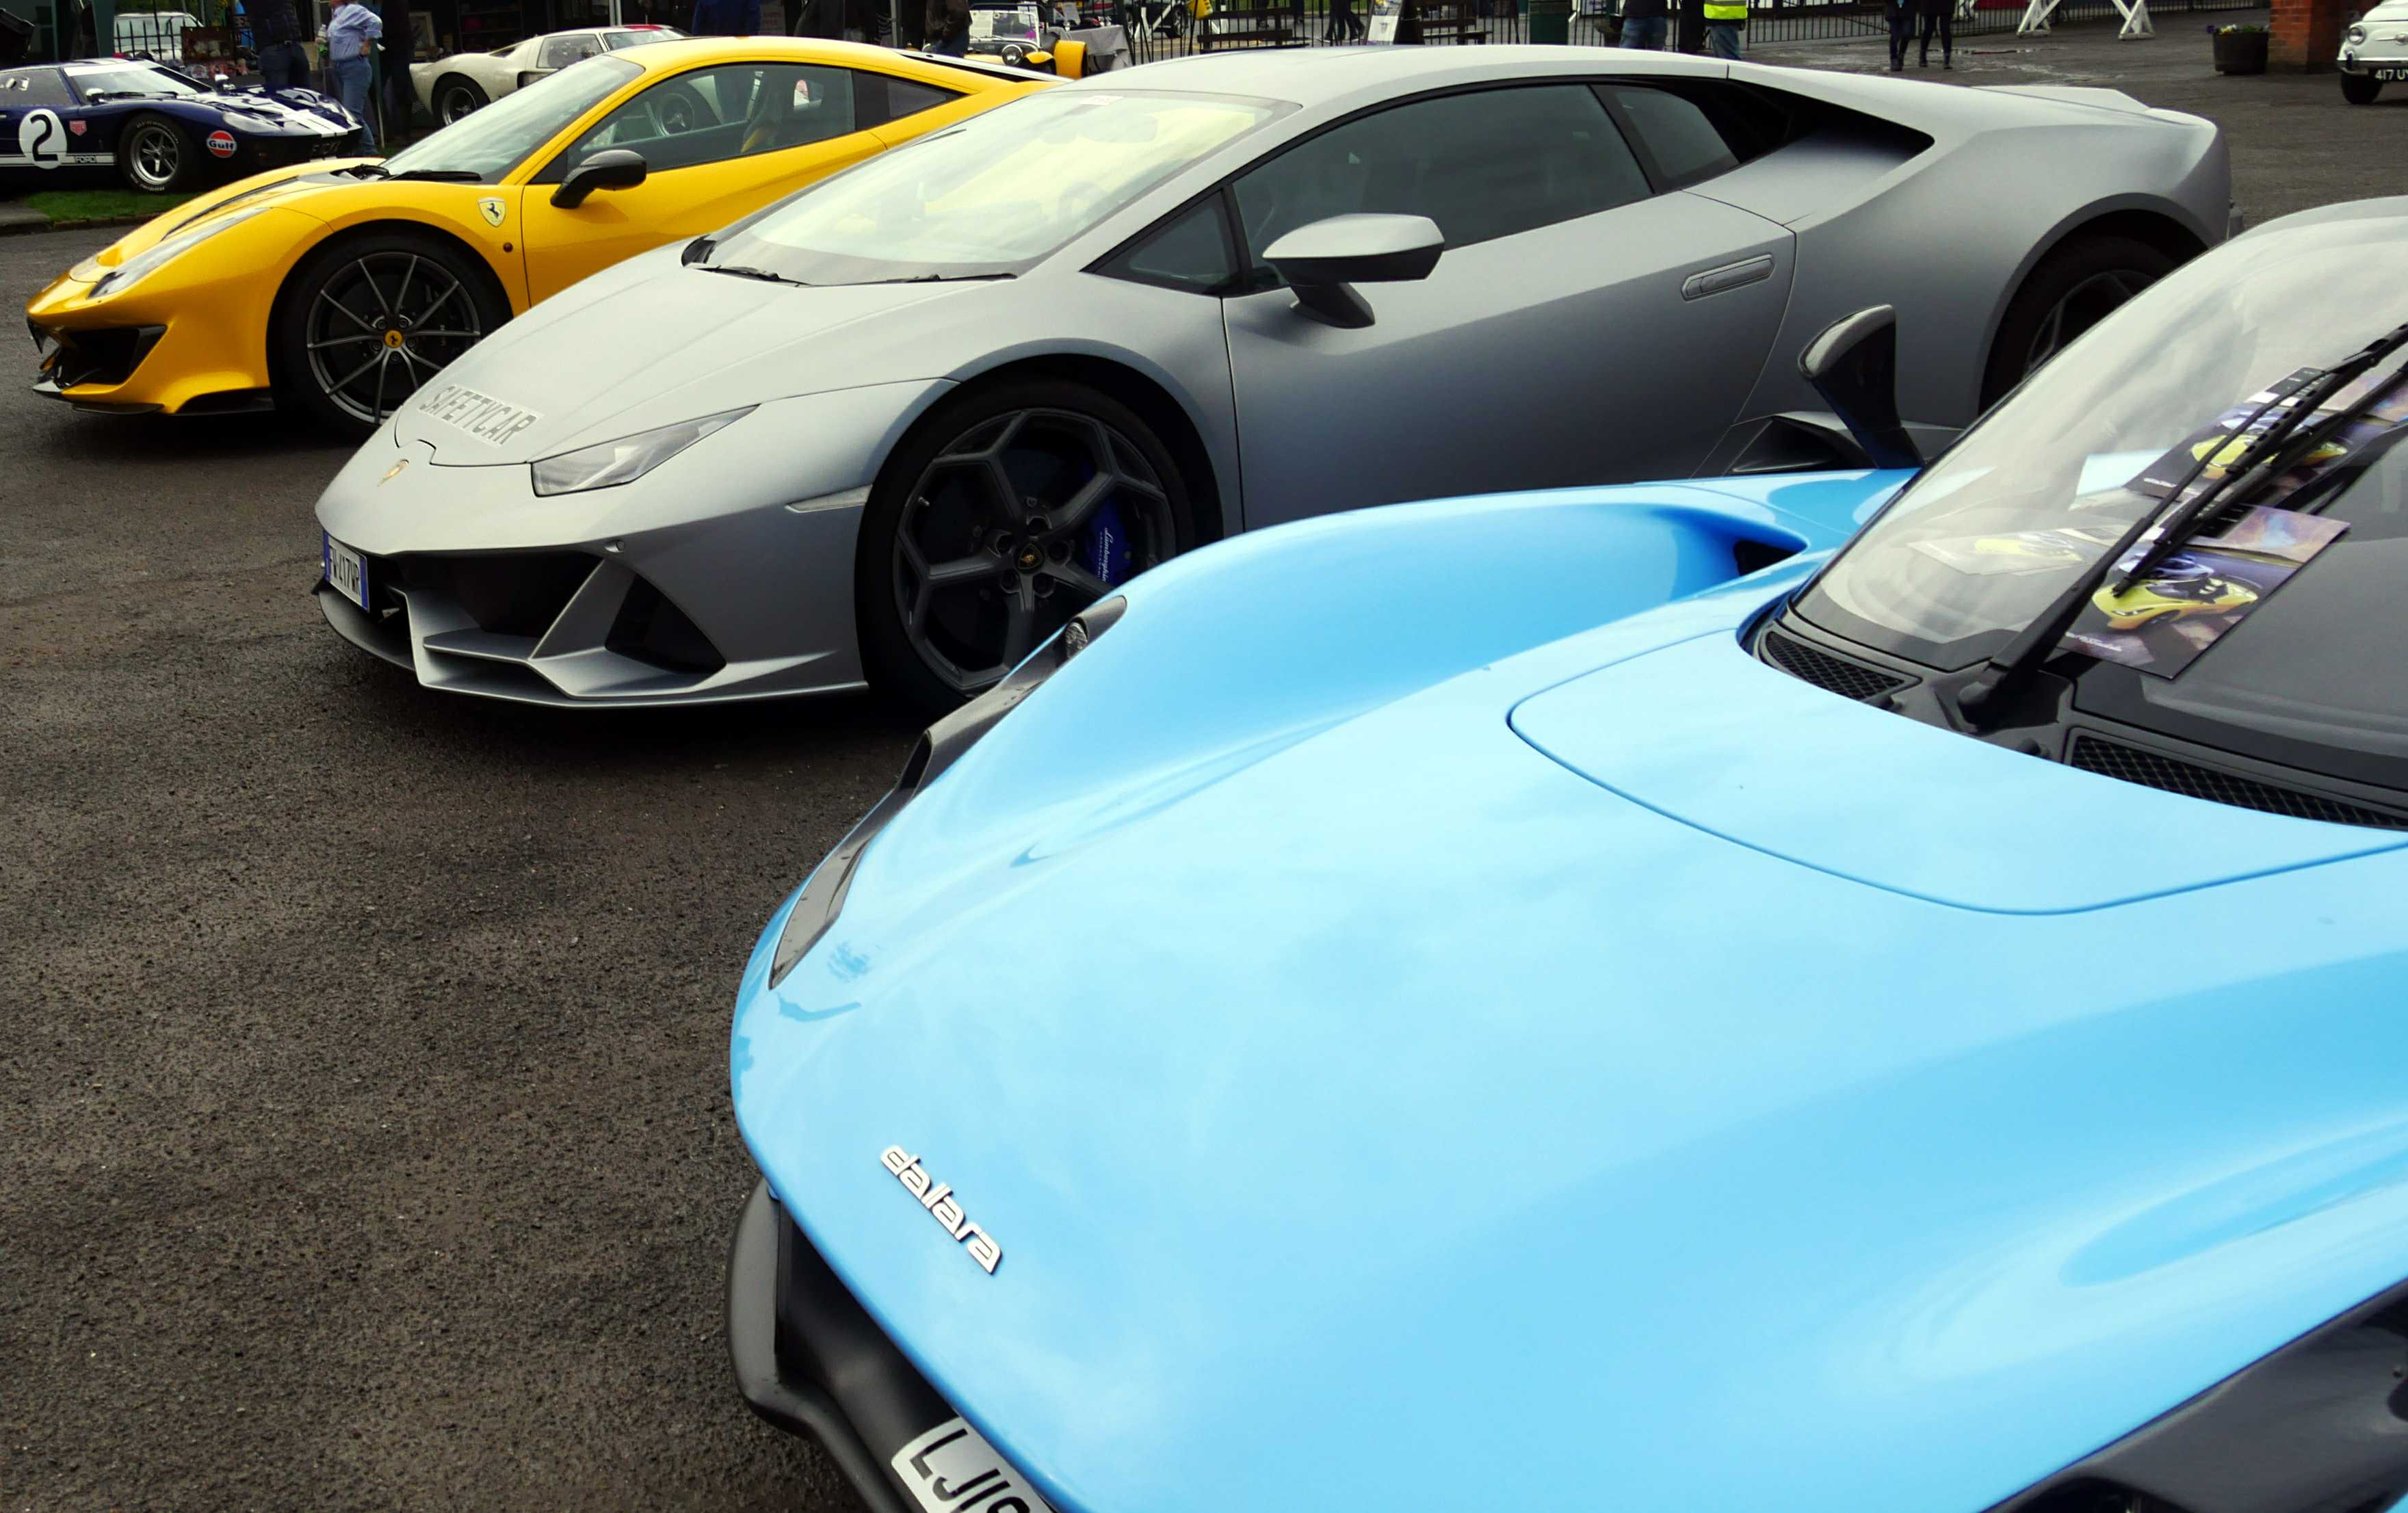 A Ferrari, Lamborghini and Dallara